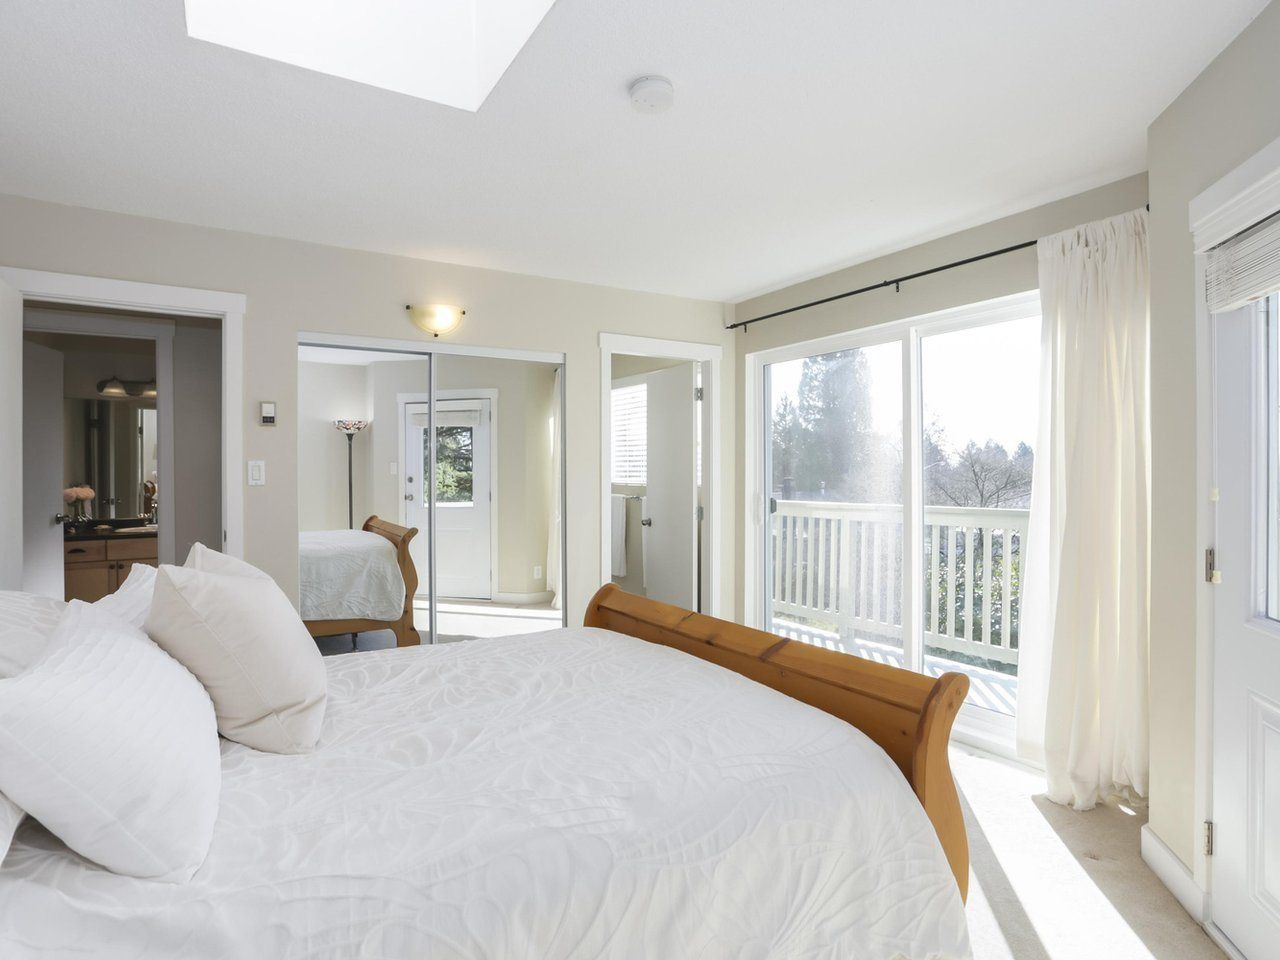 Photo 10: Photos: 325 W KINGS Road in North Vancouver: Upper Lonsdale House for sale : MLS®# R2443642